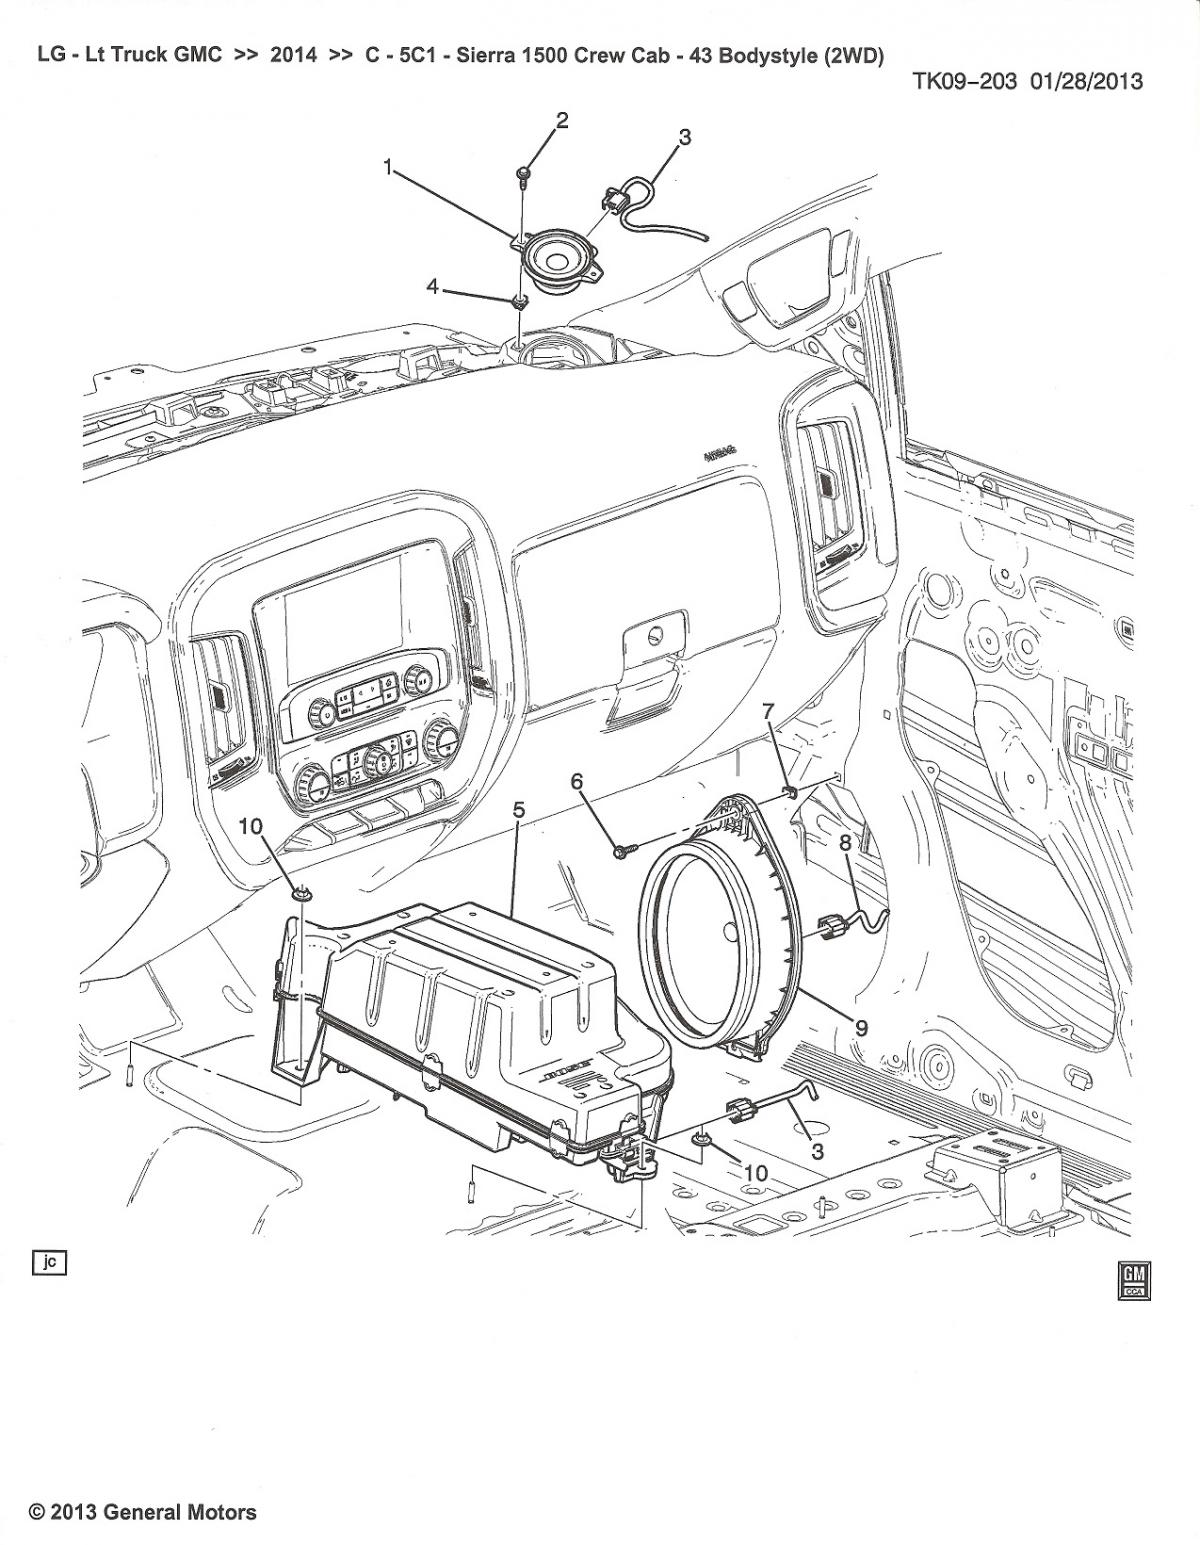 Chevy Truck Drawing At Free For Personal Use Motor Wiring Diagrams Additionally General Motors 1200x1545 Dash Speakers